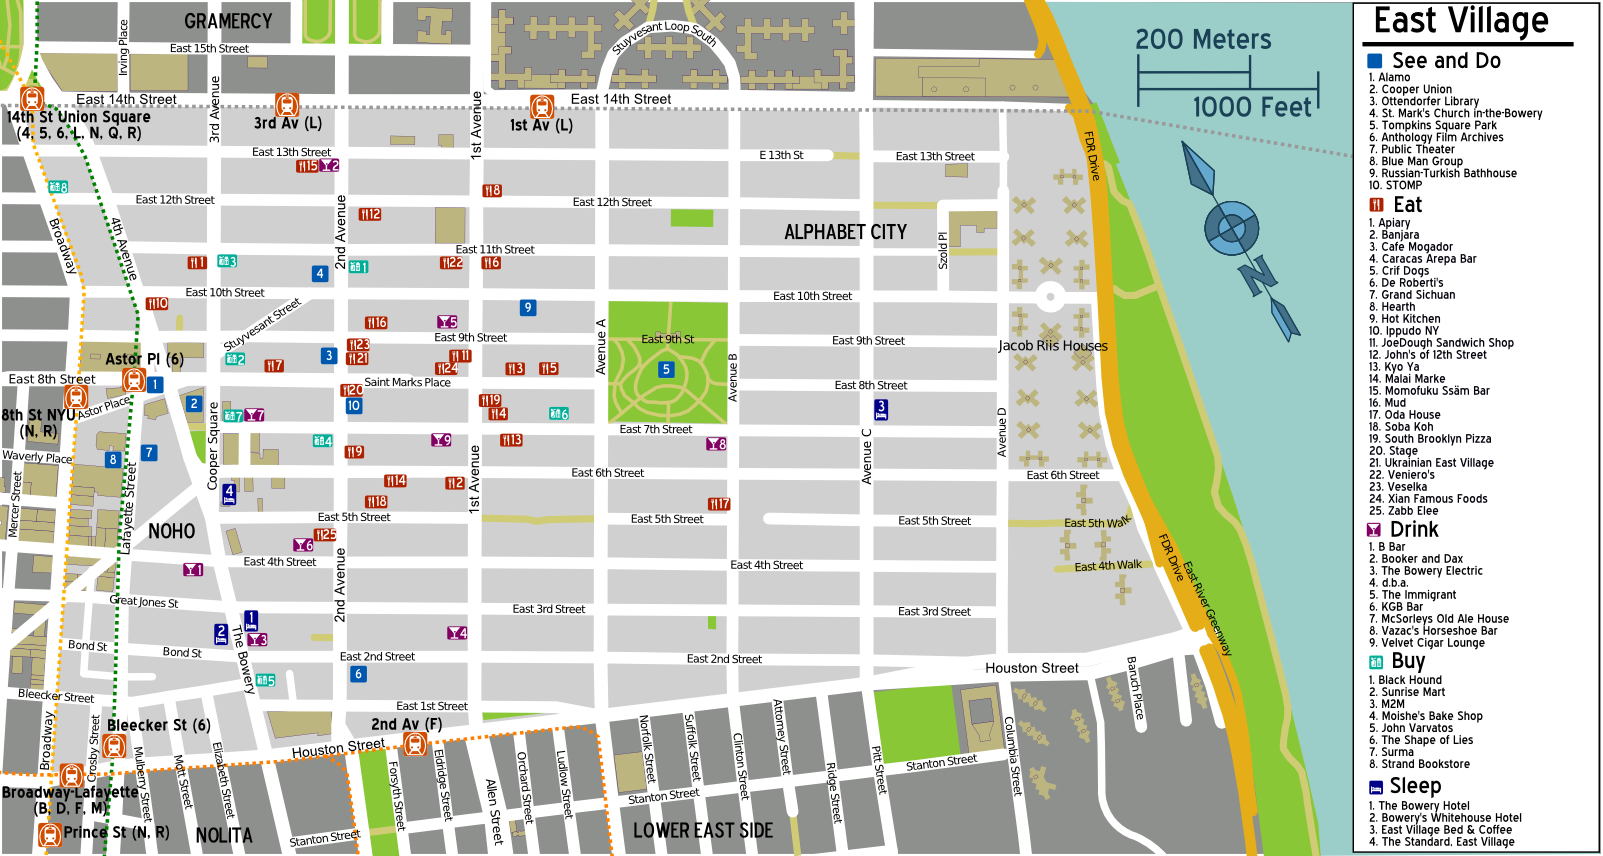 East Village Map File:Eastvillage map.png   Wikimedia Commons East Village Map